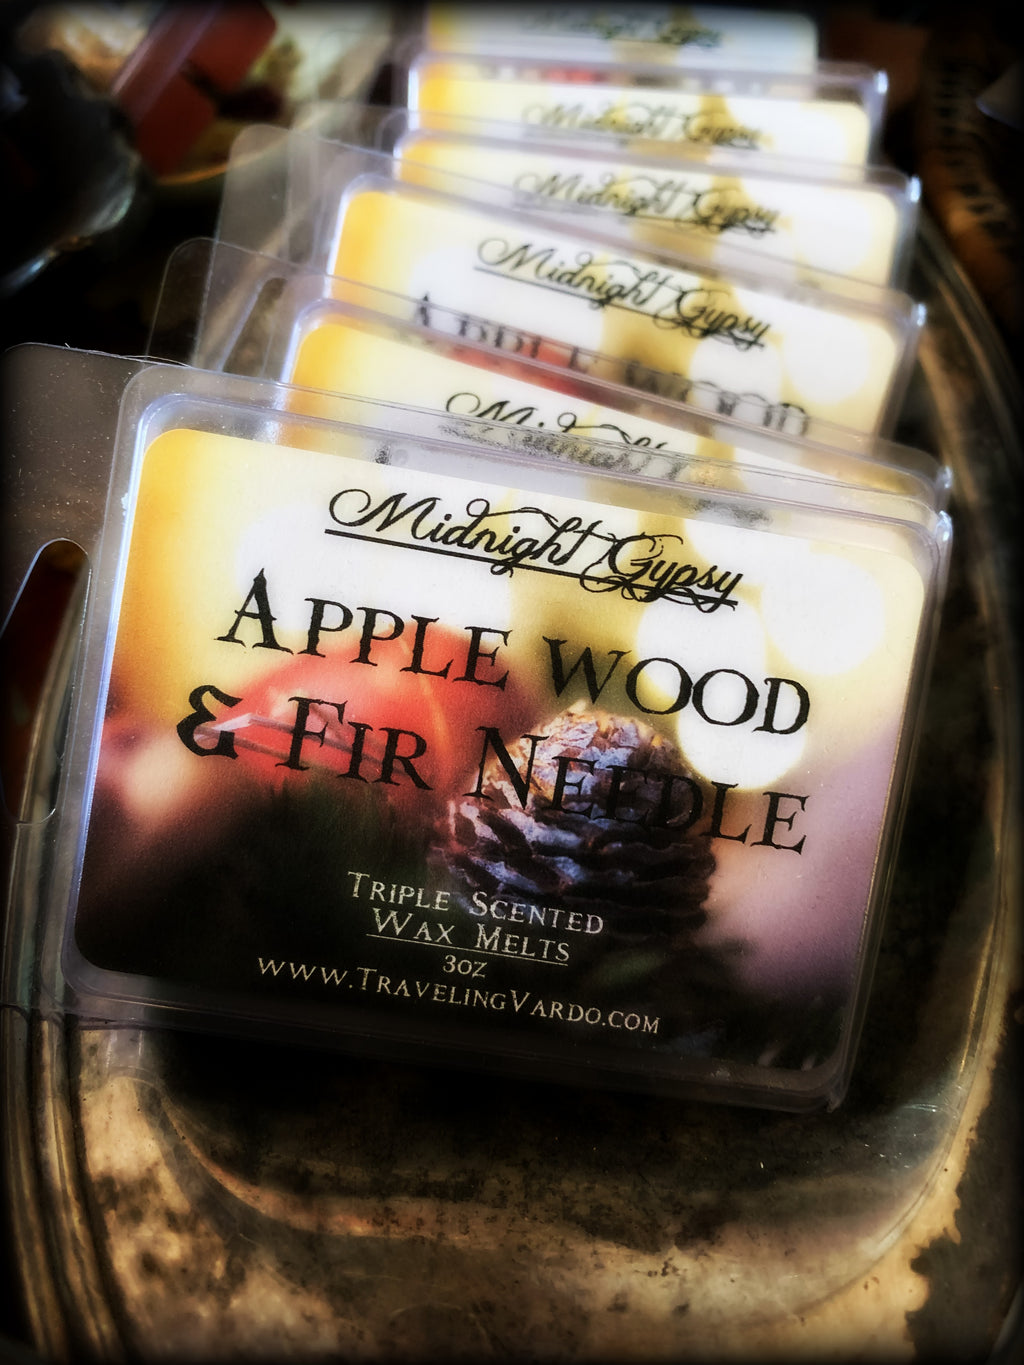 APPLE WOOD & FIR NEEDLE ~ Highly Fragranced Soy Blend Wax Tarts